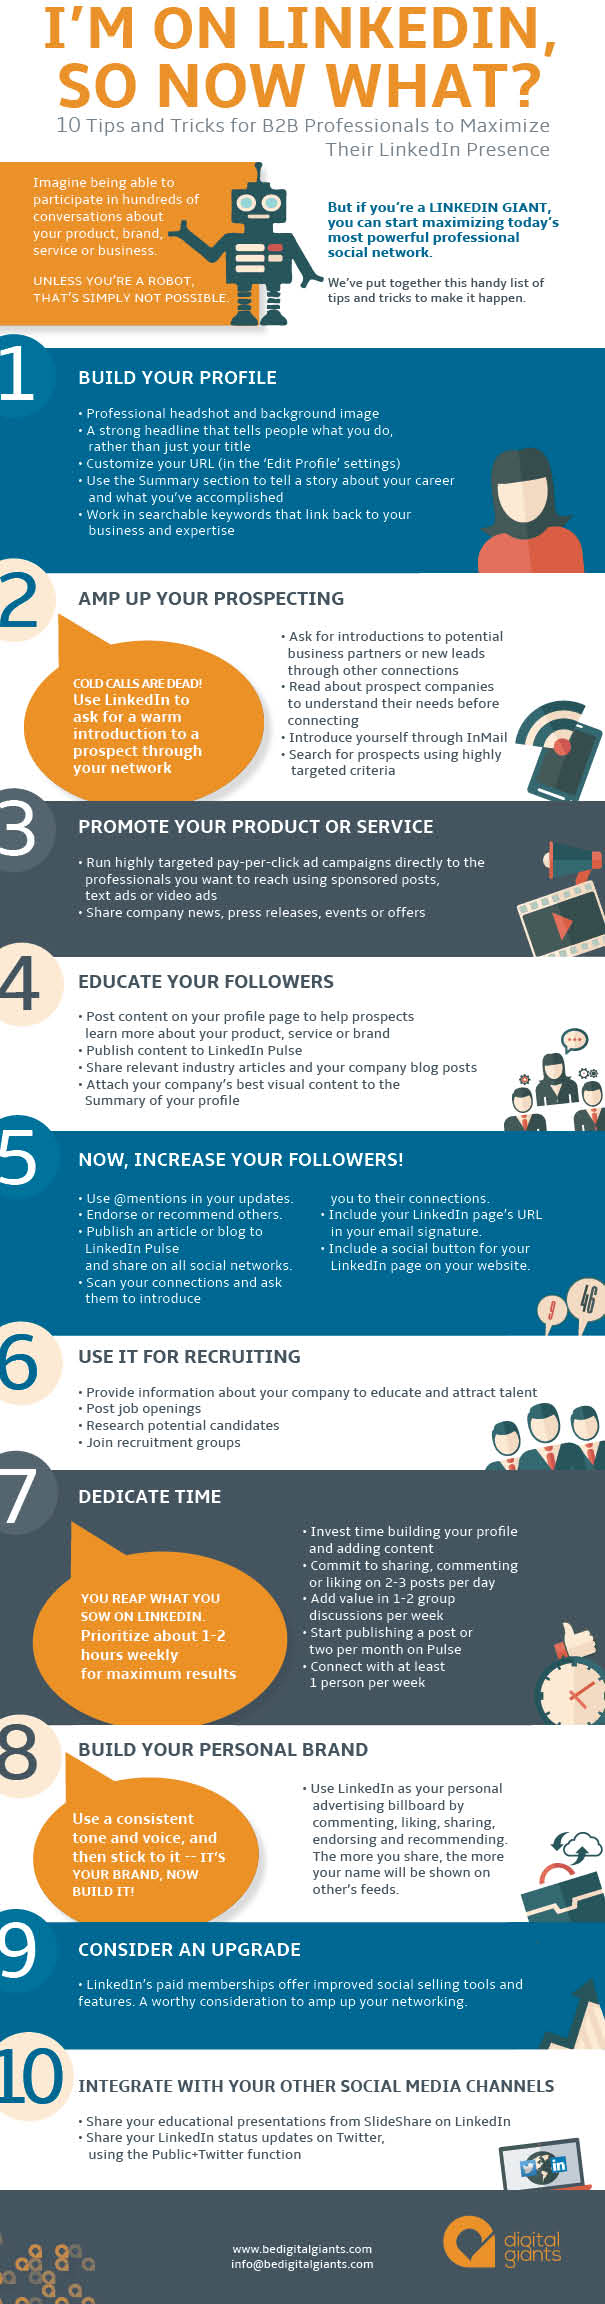 A guide to networking with LinkedIn